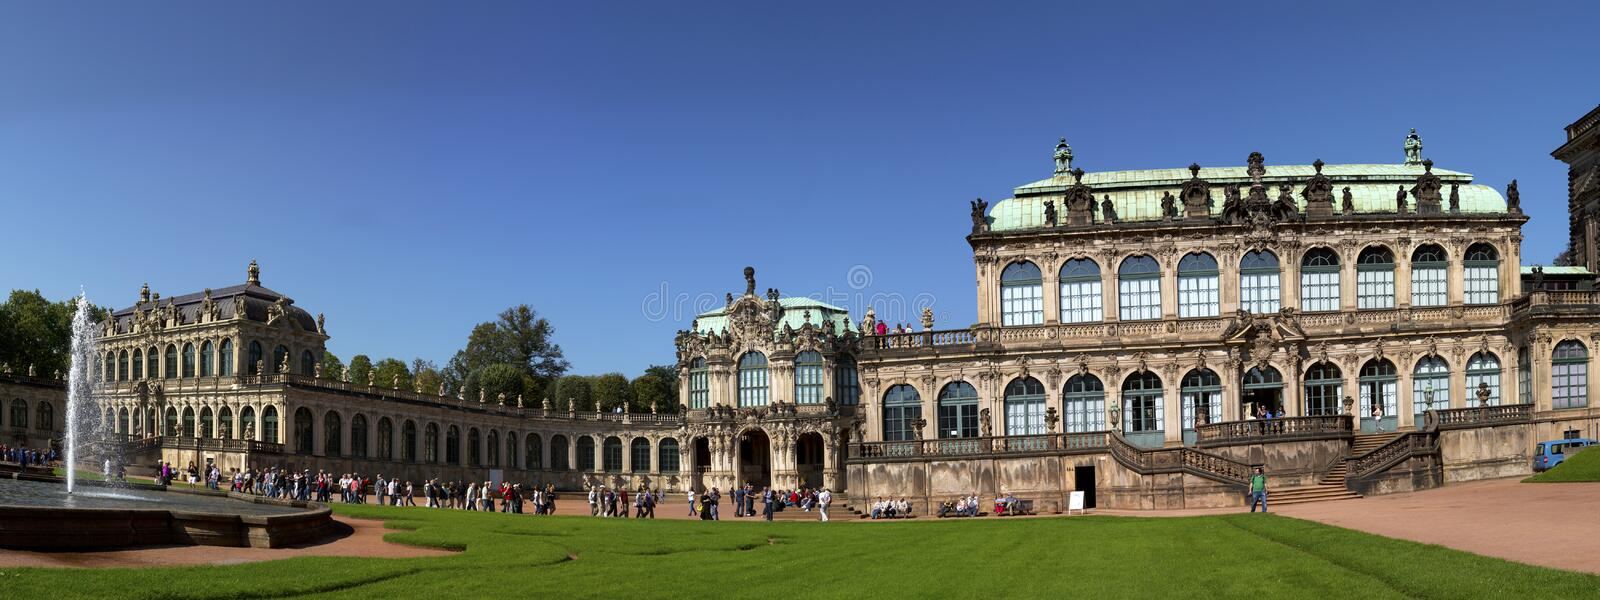 DRESDEN, GERMANY - SEPTEMBER 17: Zwinger palace, XVIII century - famous historic building on September 17, 2014 in Dresden royalty free stock photography